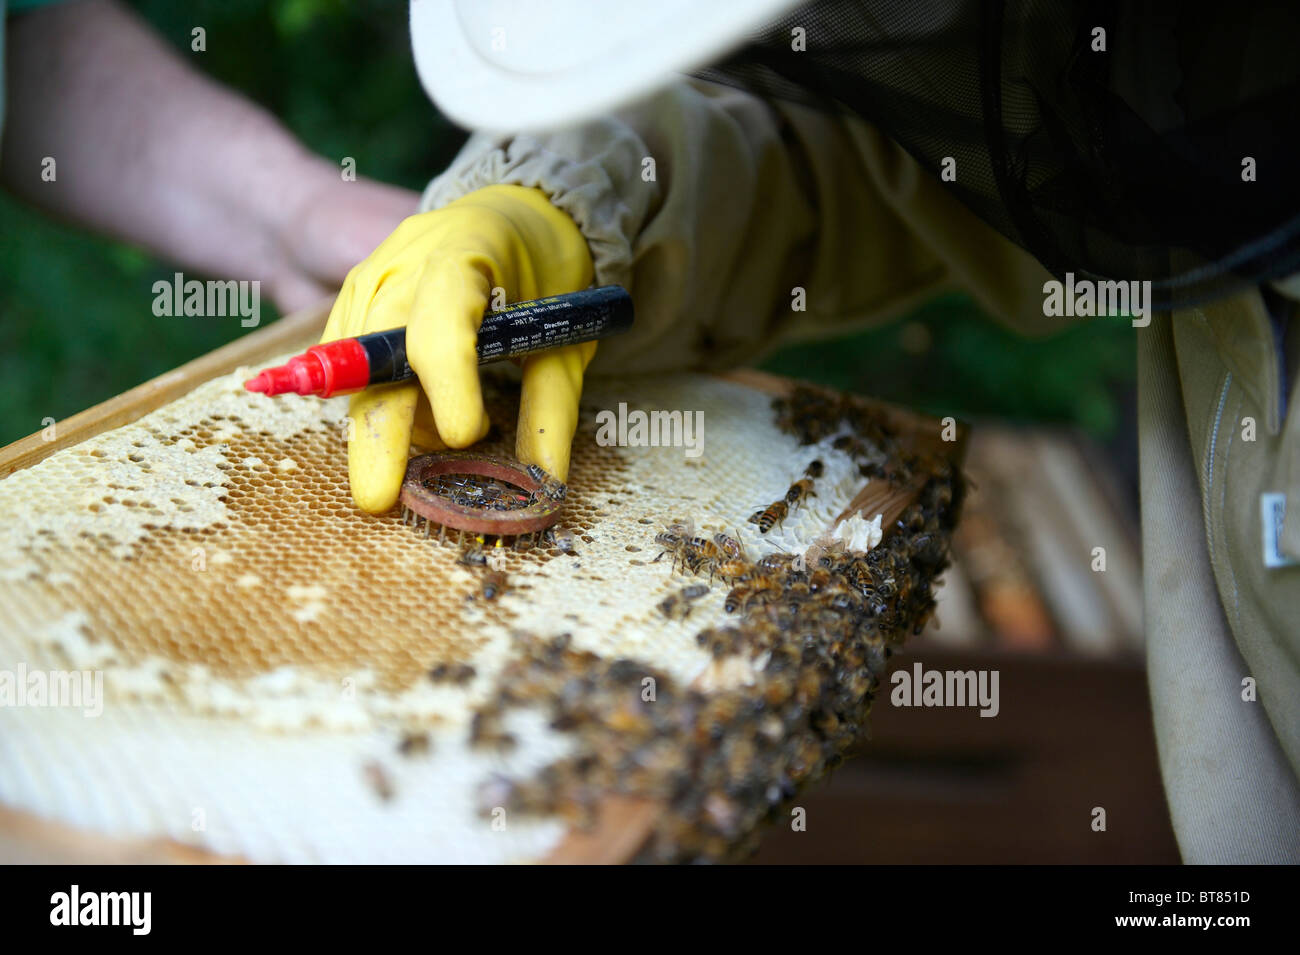 Beekeeper in protective clothing marking a queen bee on a frame from Bee hive. - Stock Image